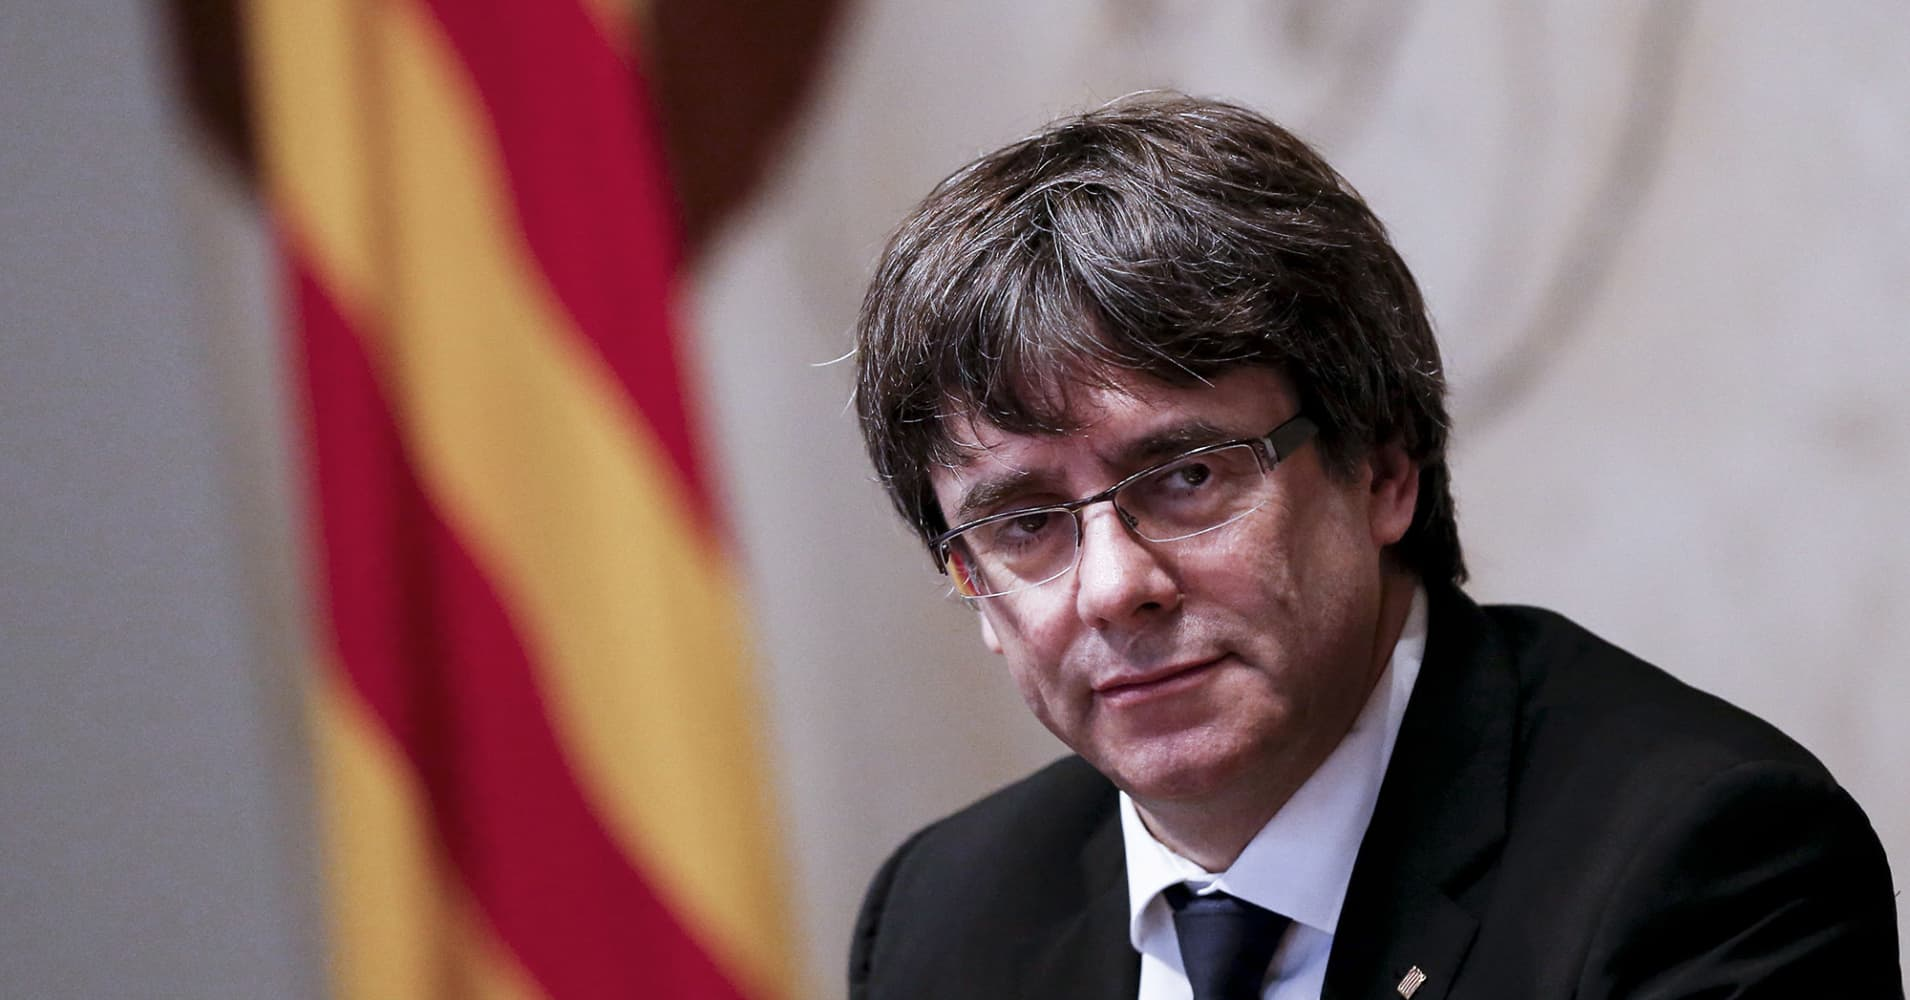 Madrid calls on Puigdemont to participate in Catalan elections